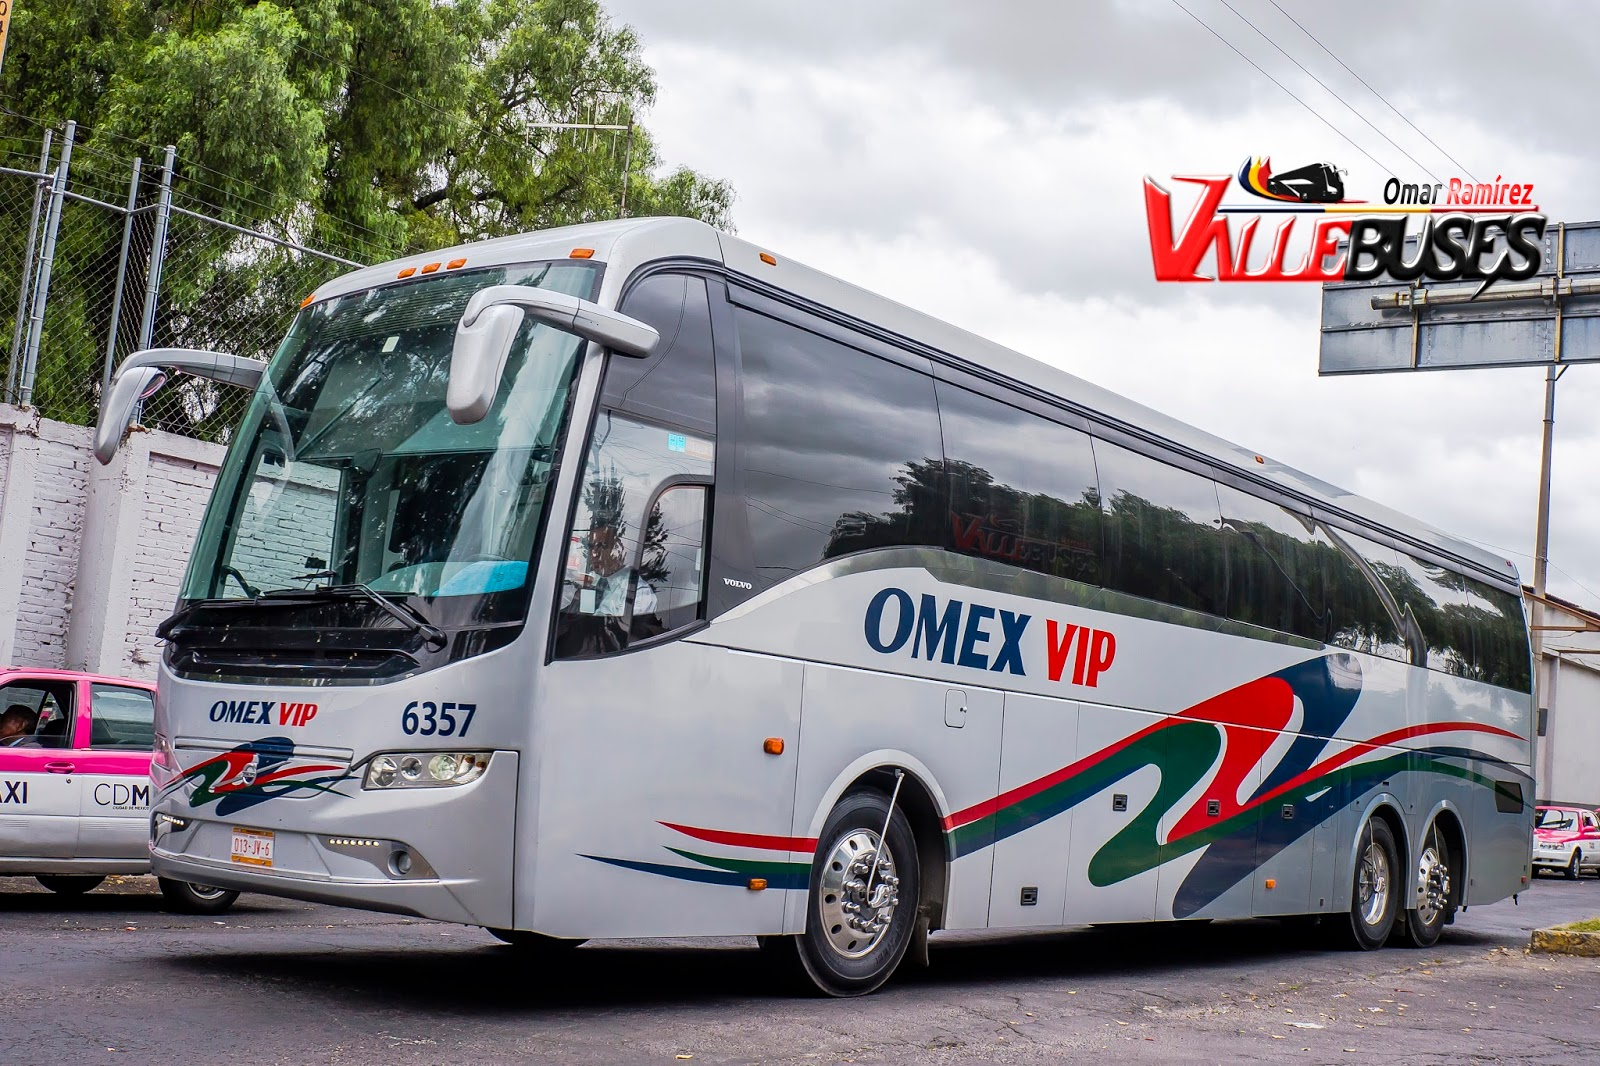 Vallebuses: 03227 - OMEX VIP